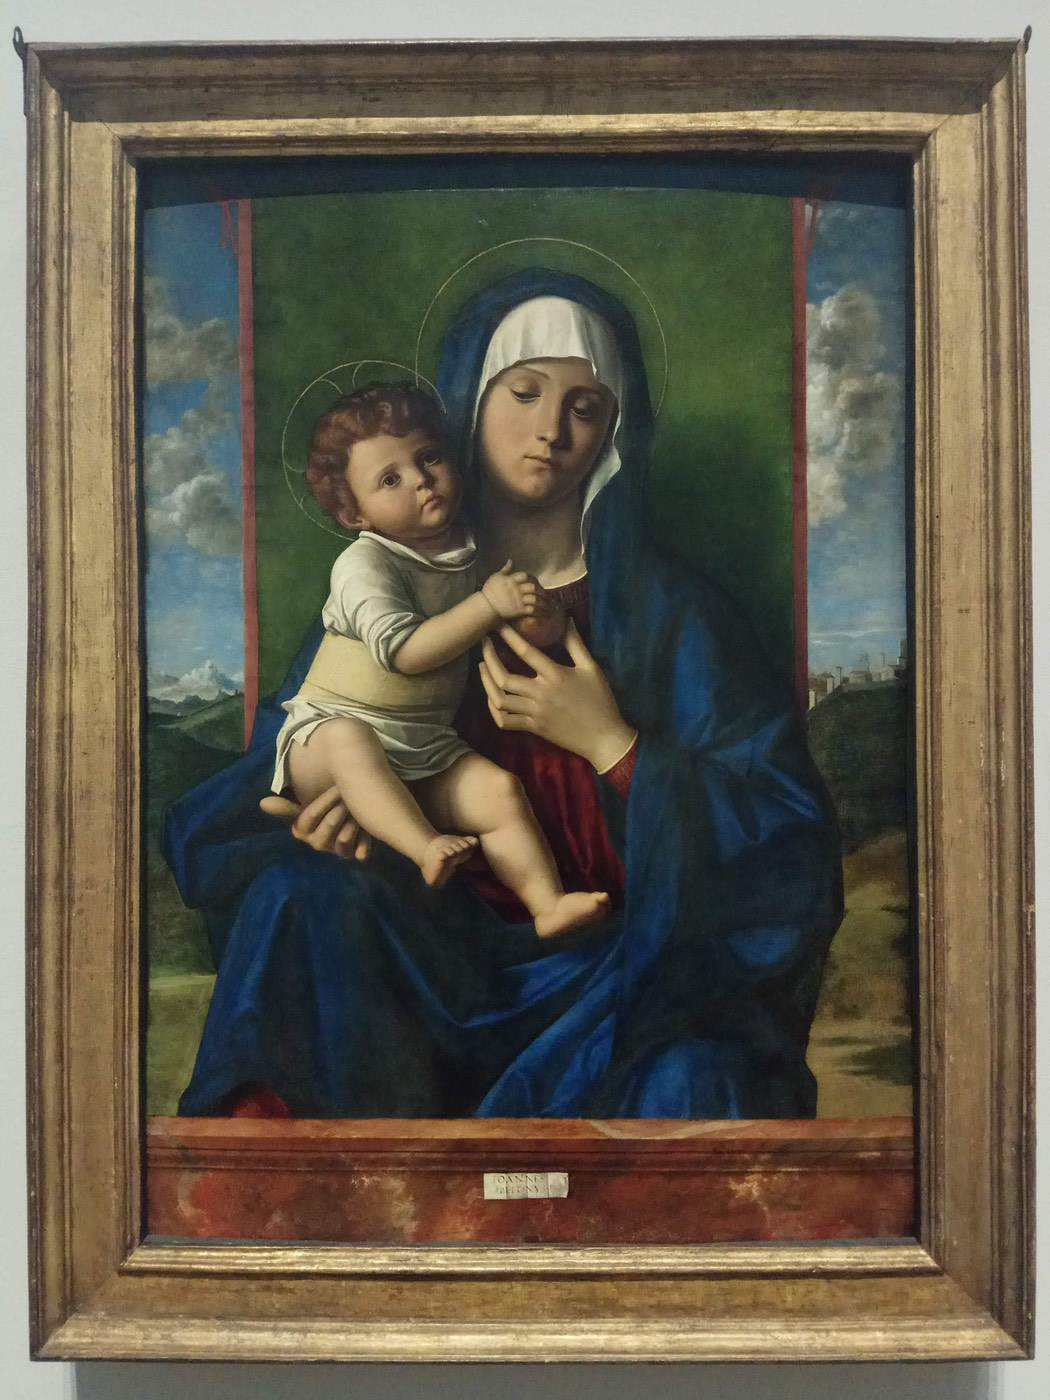 Workshop of Giovanni Bellini|The Virgin and Child